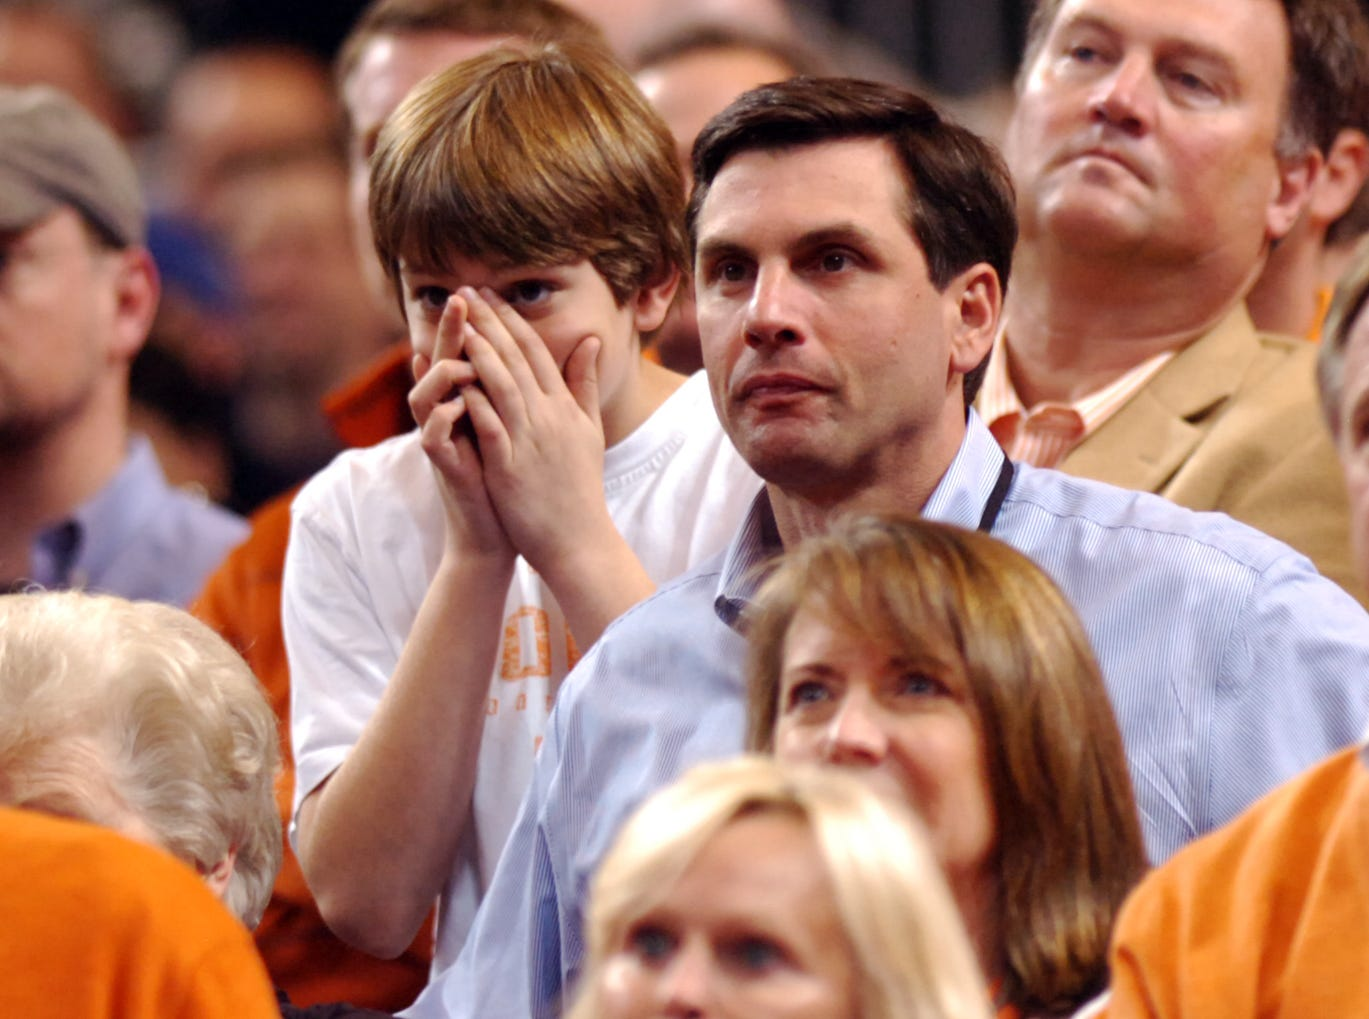 Tennessee football head coach Derek Dooley, right, and son John Taylor, left, watch the Vols take on the Michigan State Spartans during the final seconds of the NCAA tournament at the Edward Jones Dome in St. Louis, Mo., Sunday, Mar. 28, 2010.